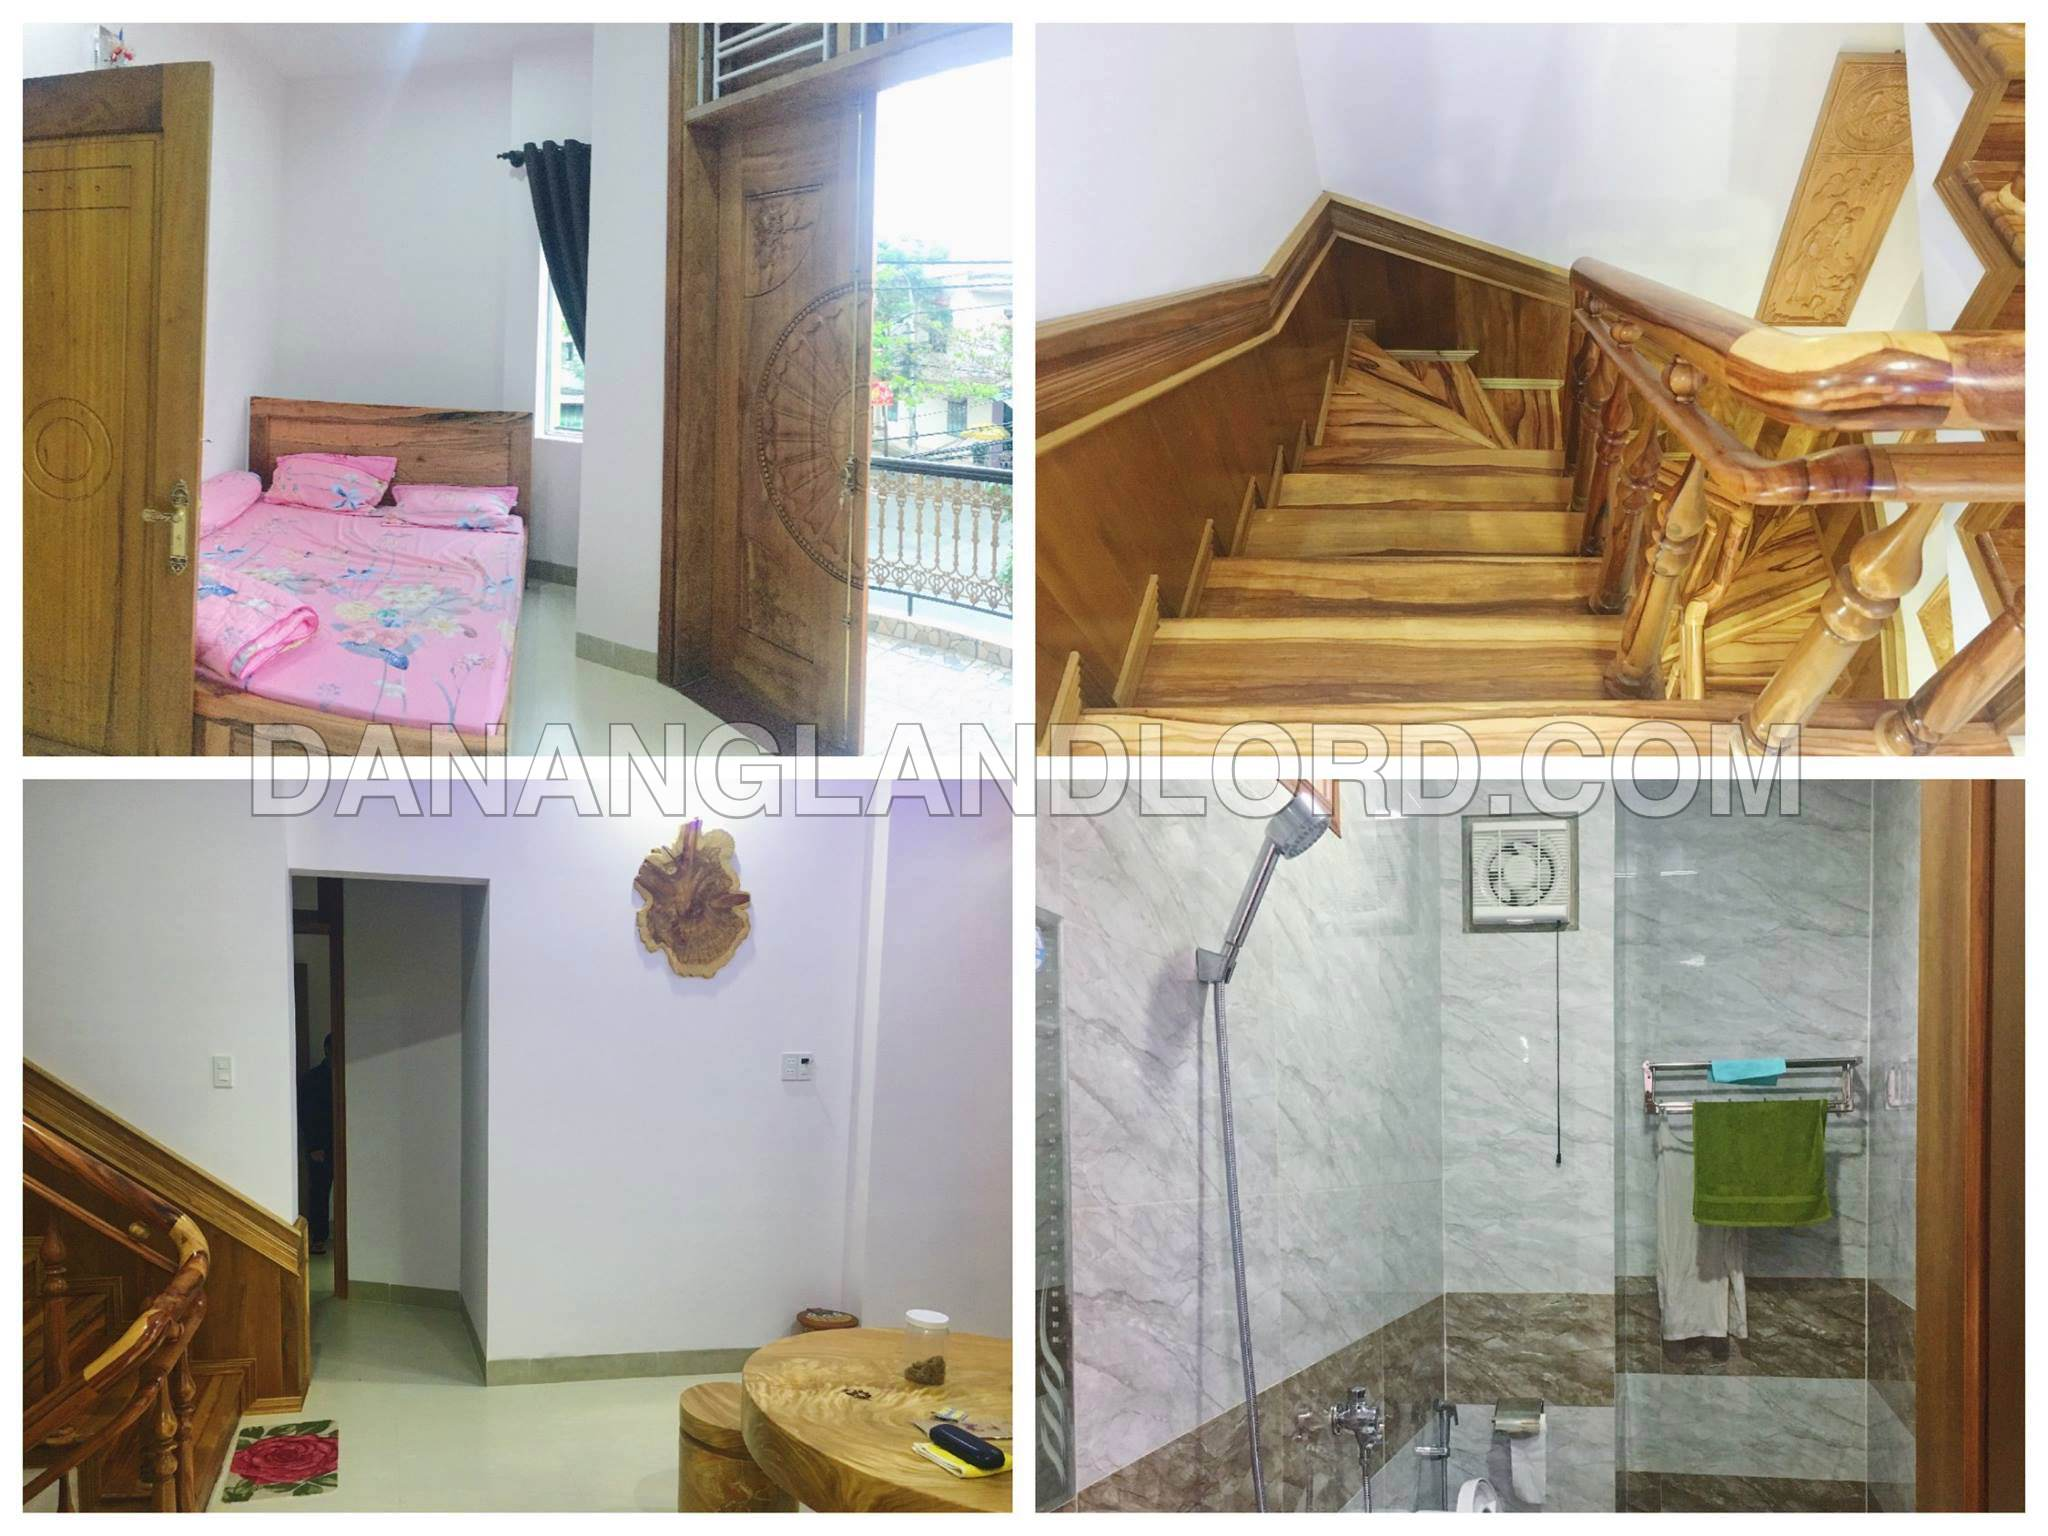 The luxury house with 7 bedrooms in An Thuong area